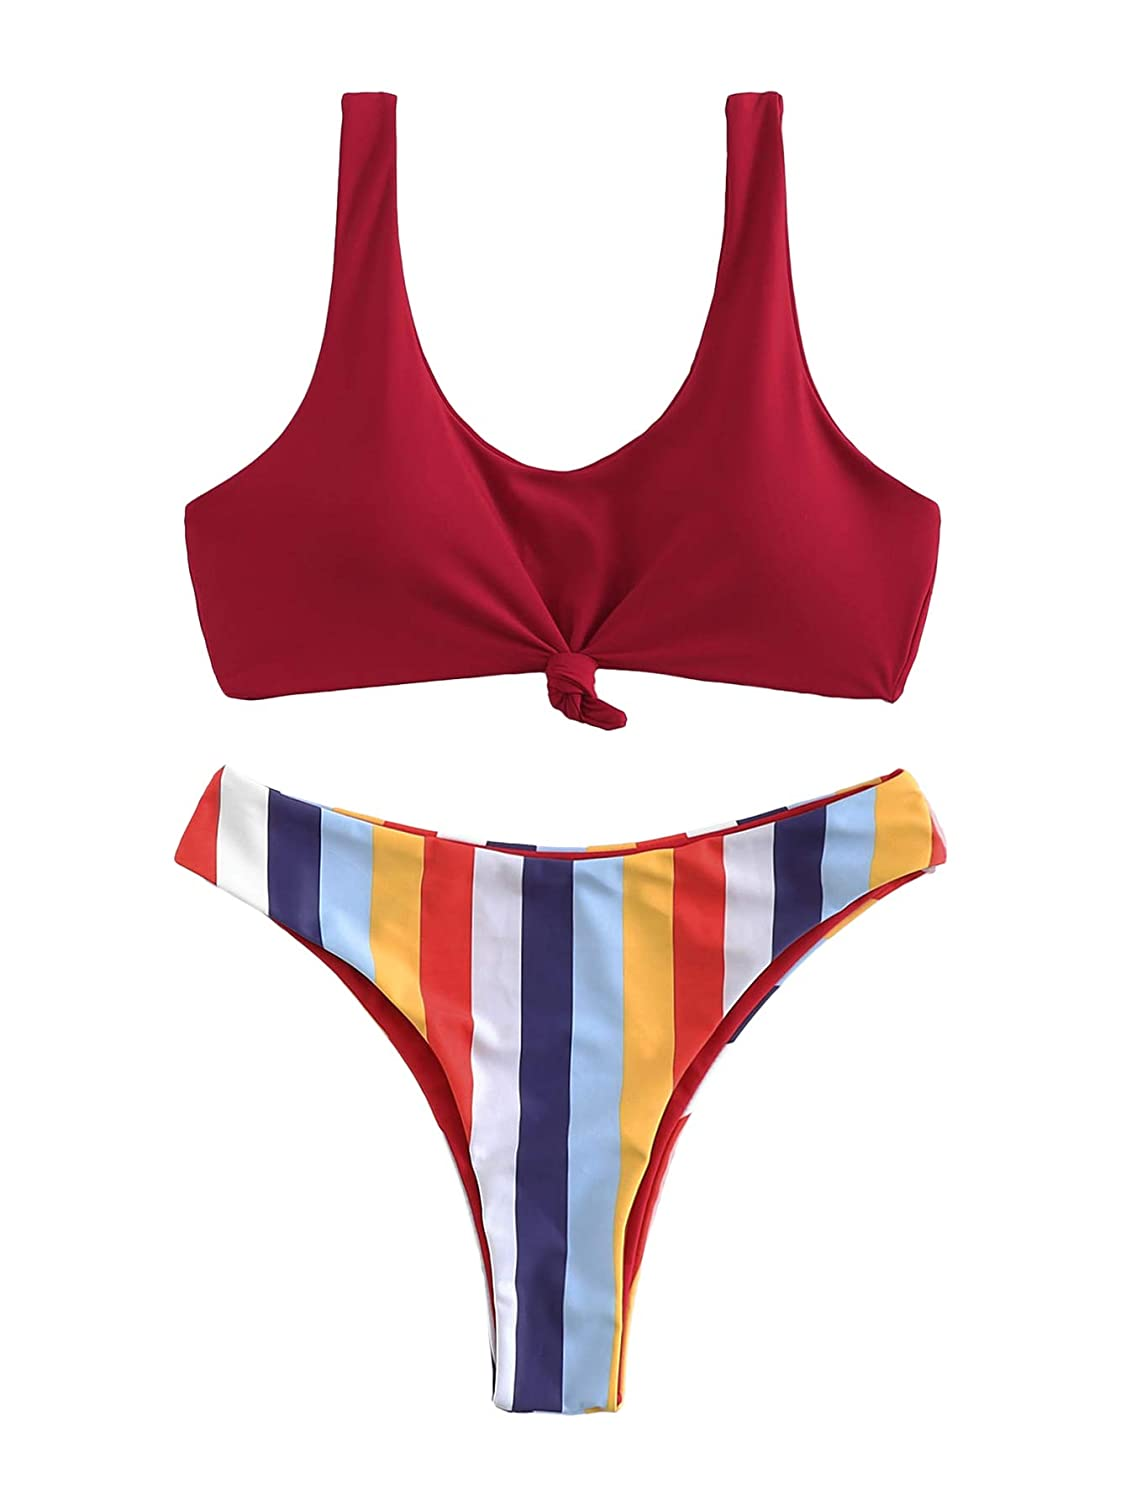 0 stripedred SweatyRocks Women's Two Piece Bathing Suit Padded Knot Plaid Bikini Set